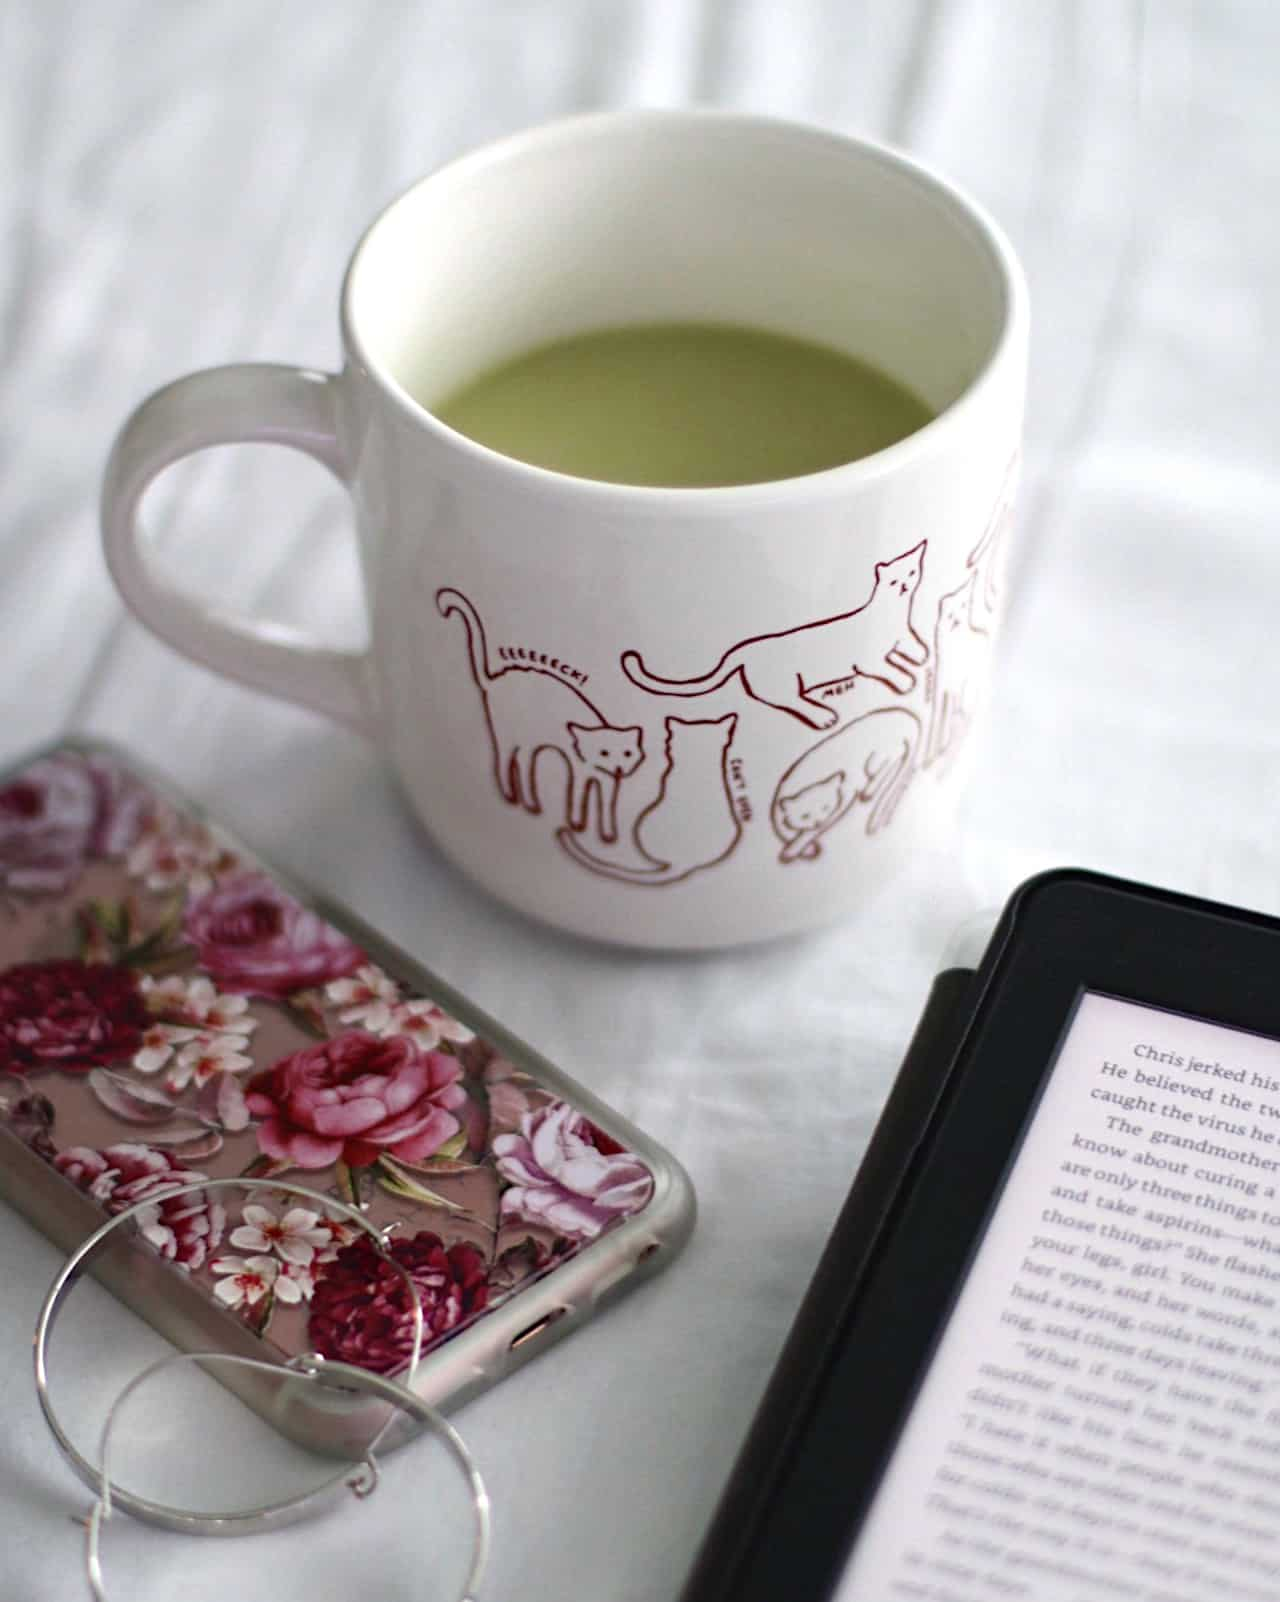 Floral phone case, matcha latte, and Kindle flat lay